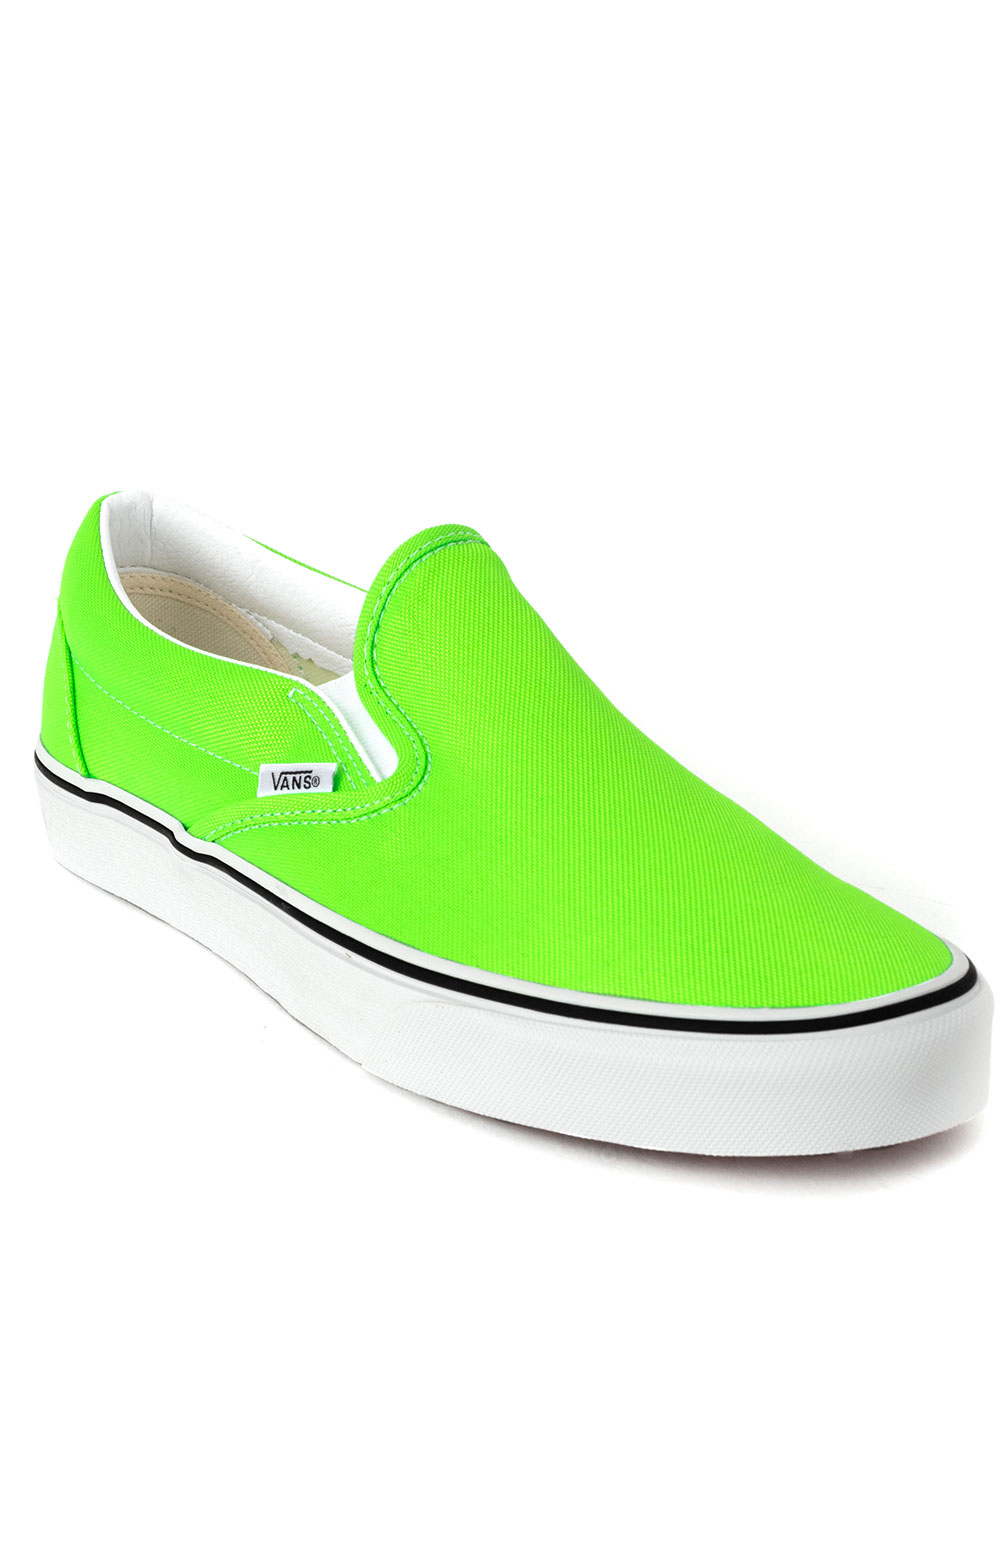 (U38WT5) Neon Classic Slip-On Shoes - Green Gecko 3